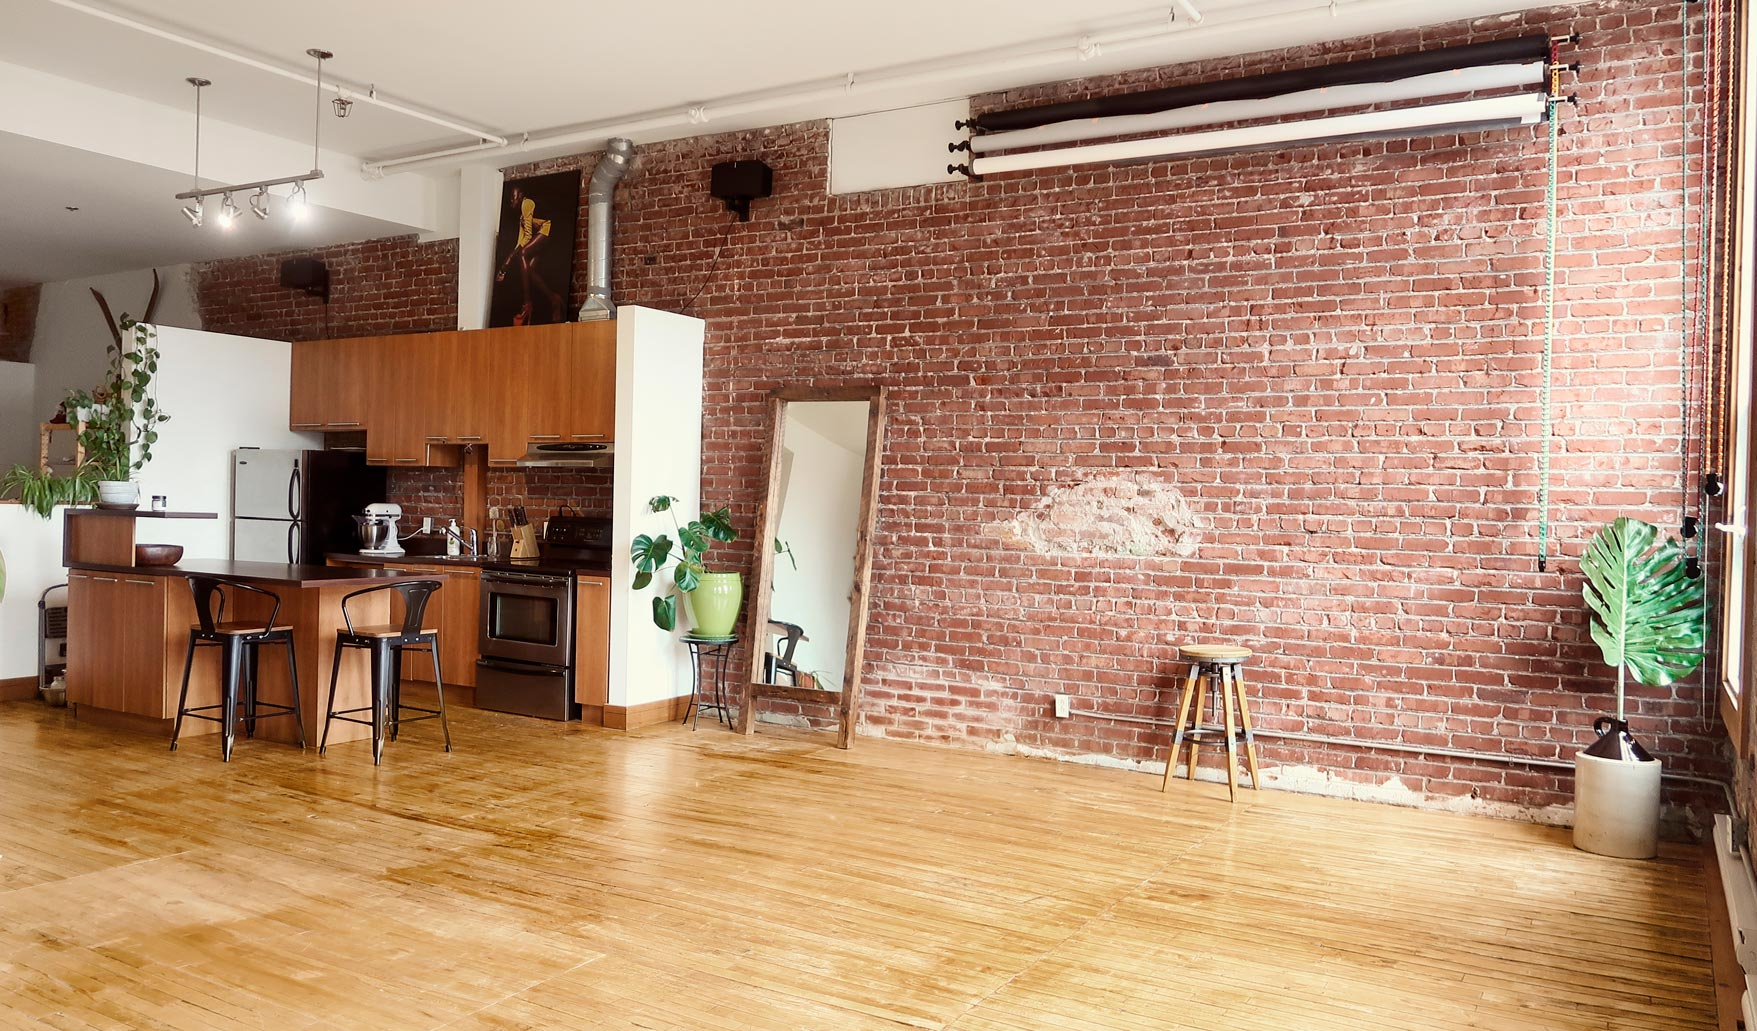 Photo and video studio for rent in Montreal industrial look brick wood floor